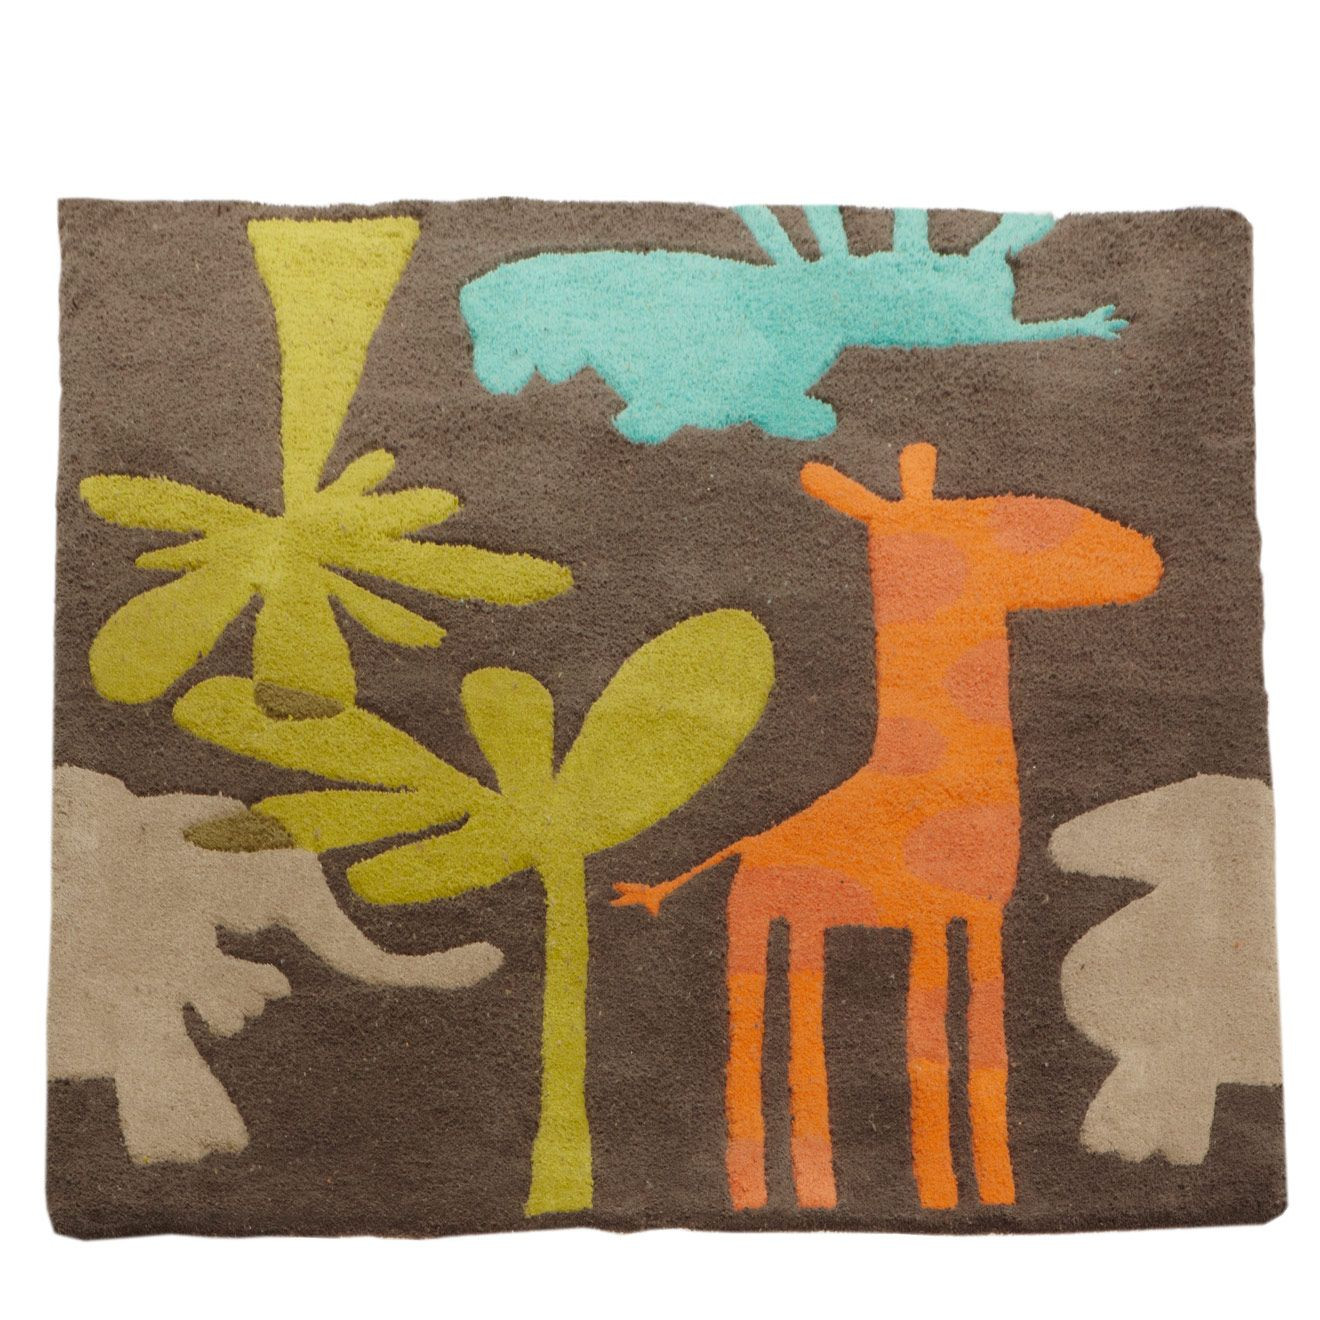 Charmant Tapis Chambre Enfant Theme Savane Party. VERTBAUDET